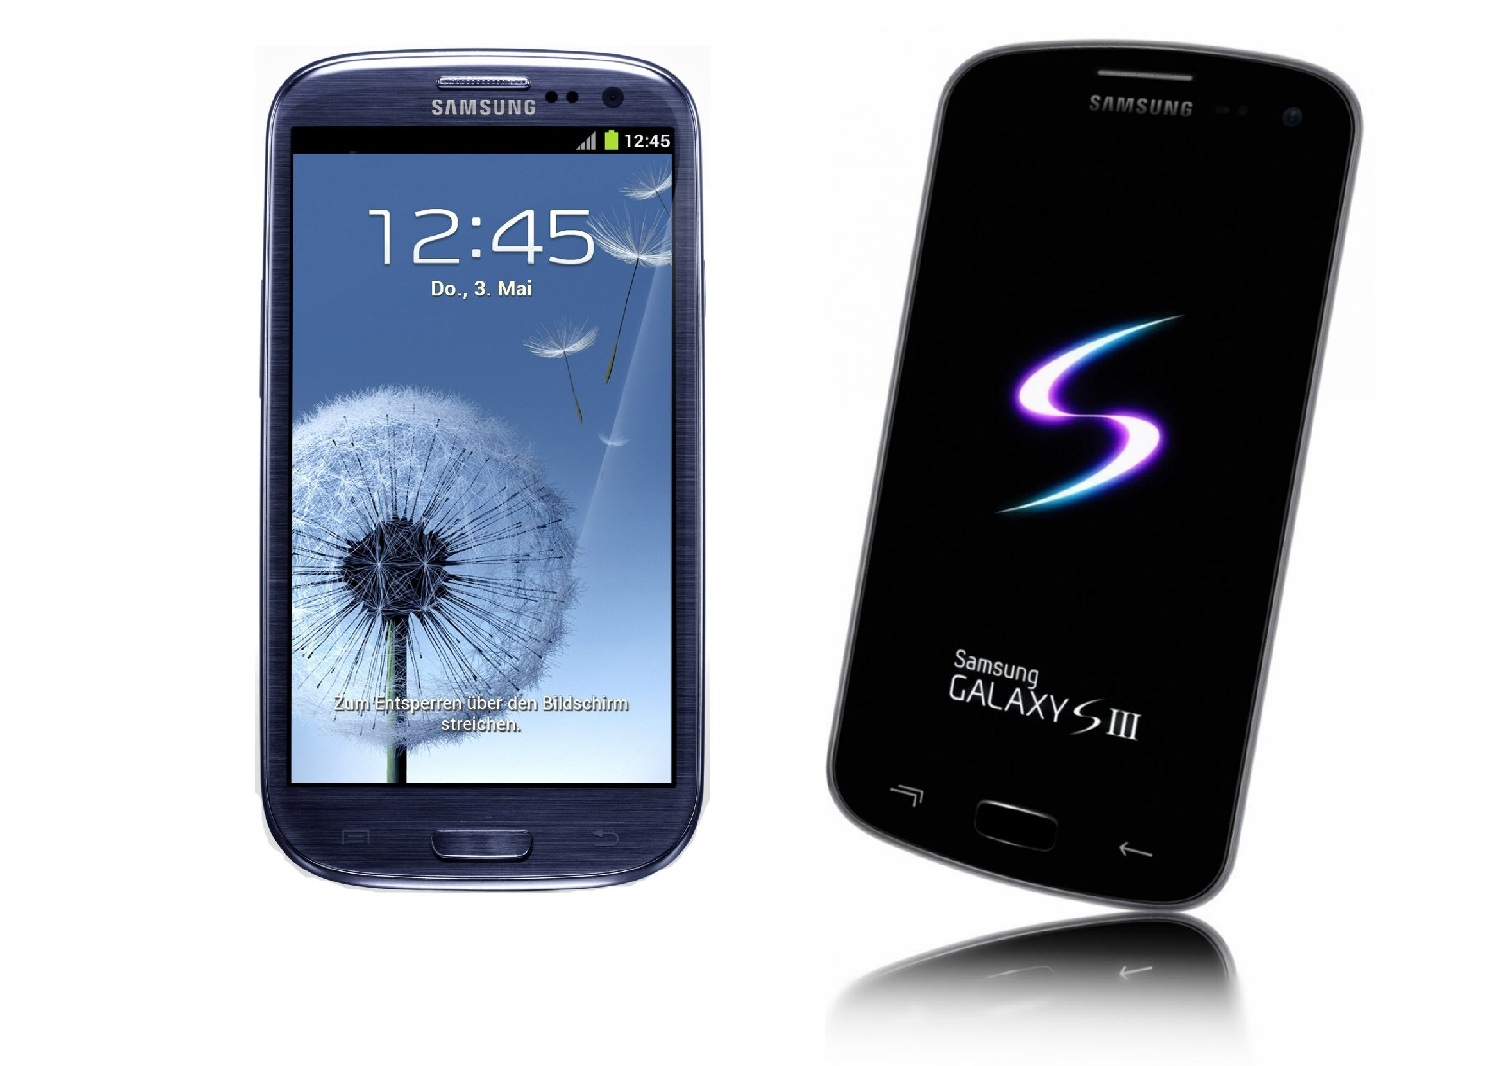 Samsung Galaxy S3 Android Mobile Phone on galaxy s111 mini